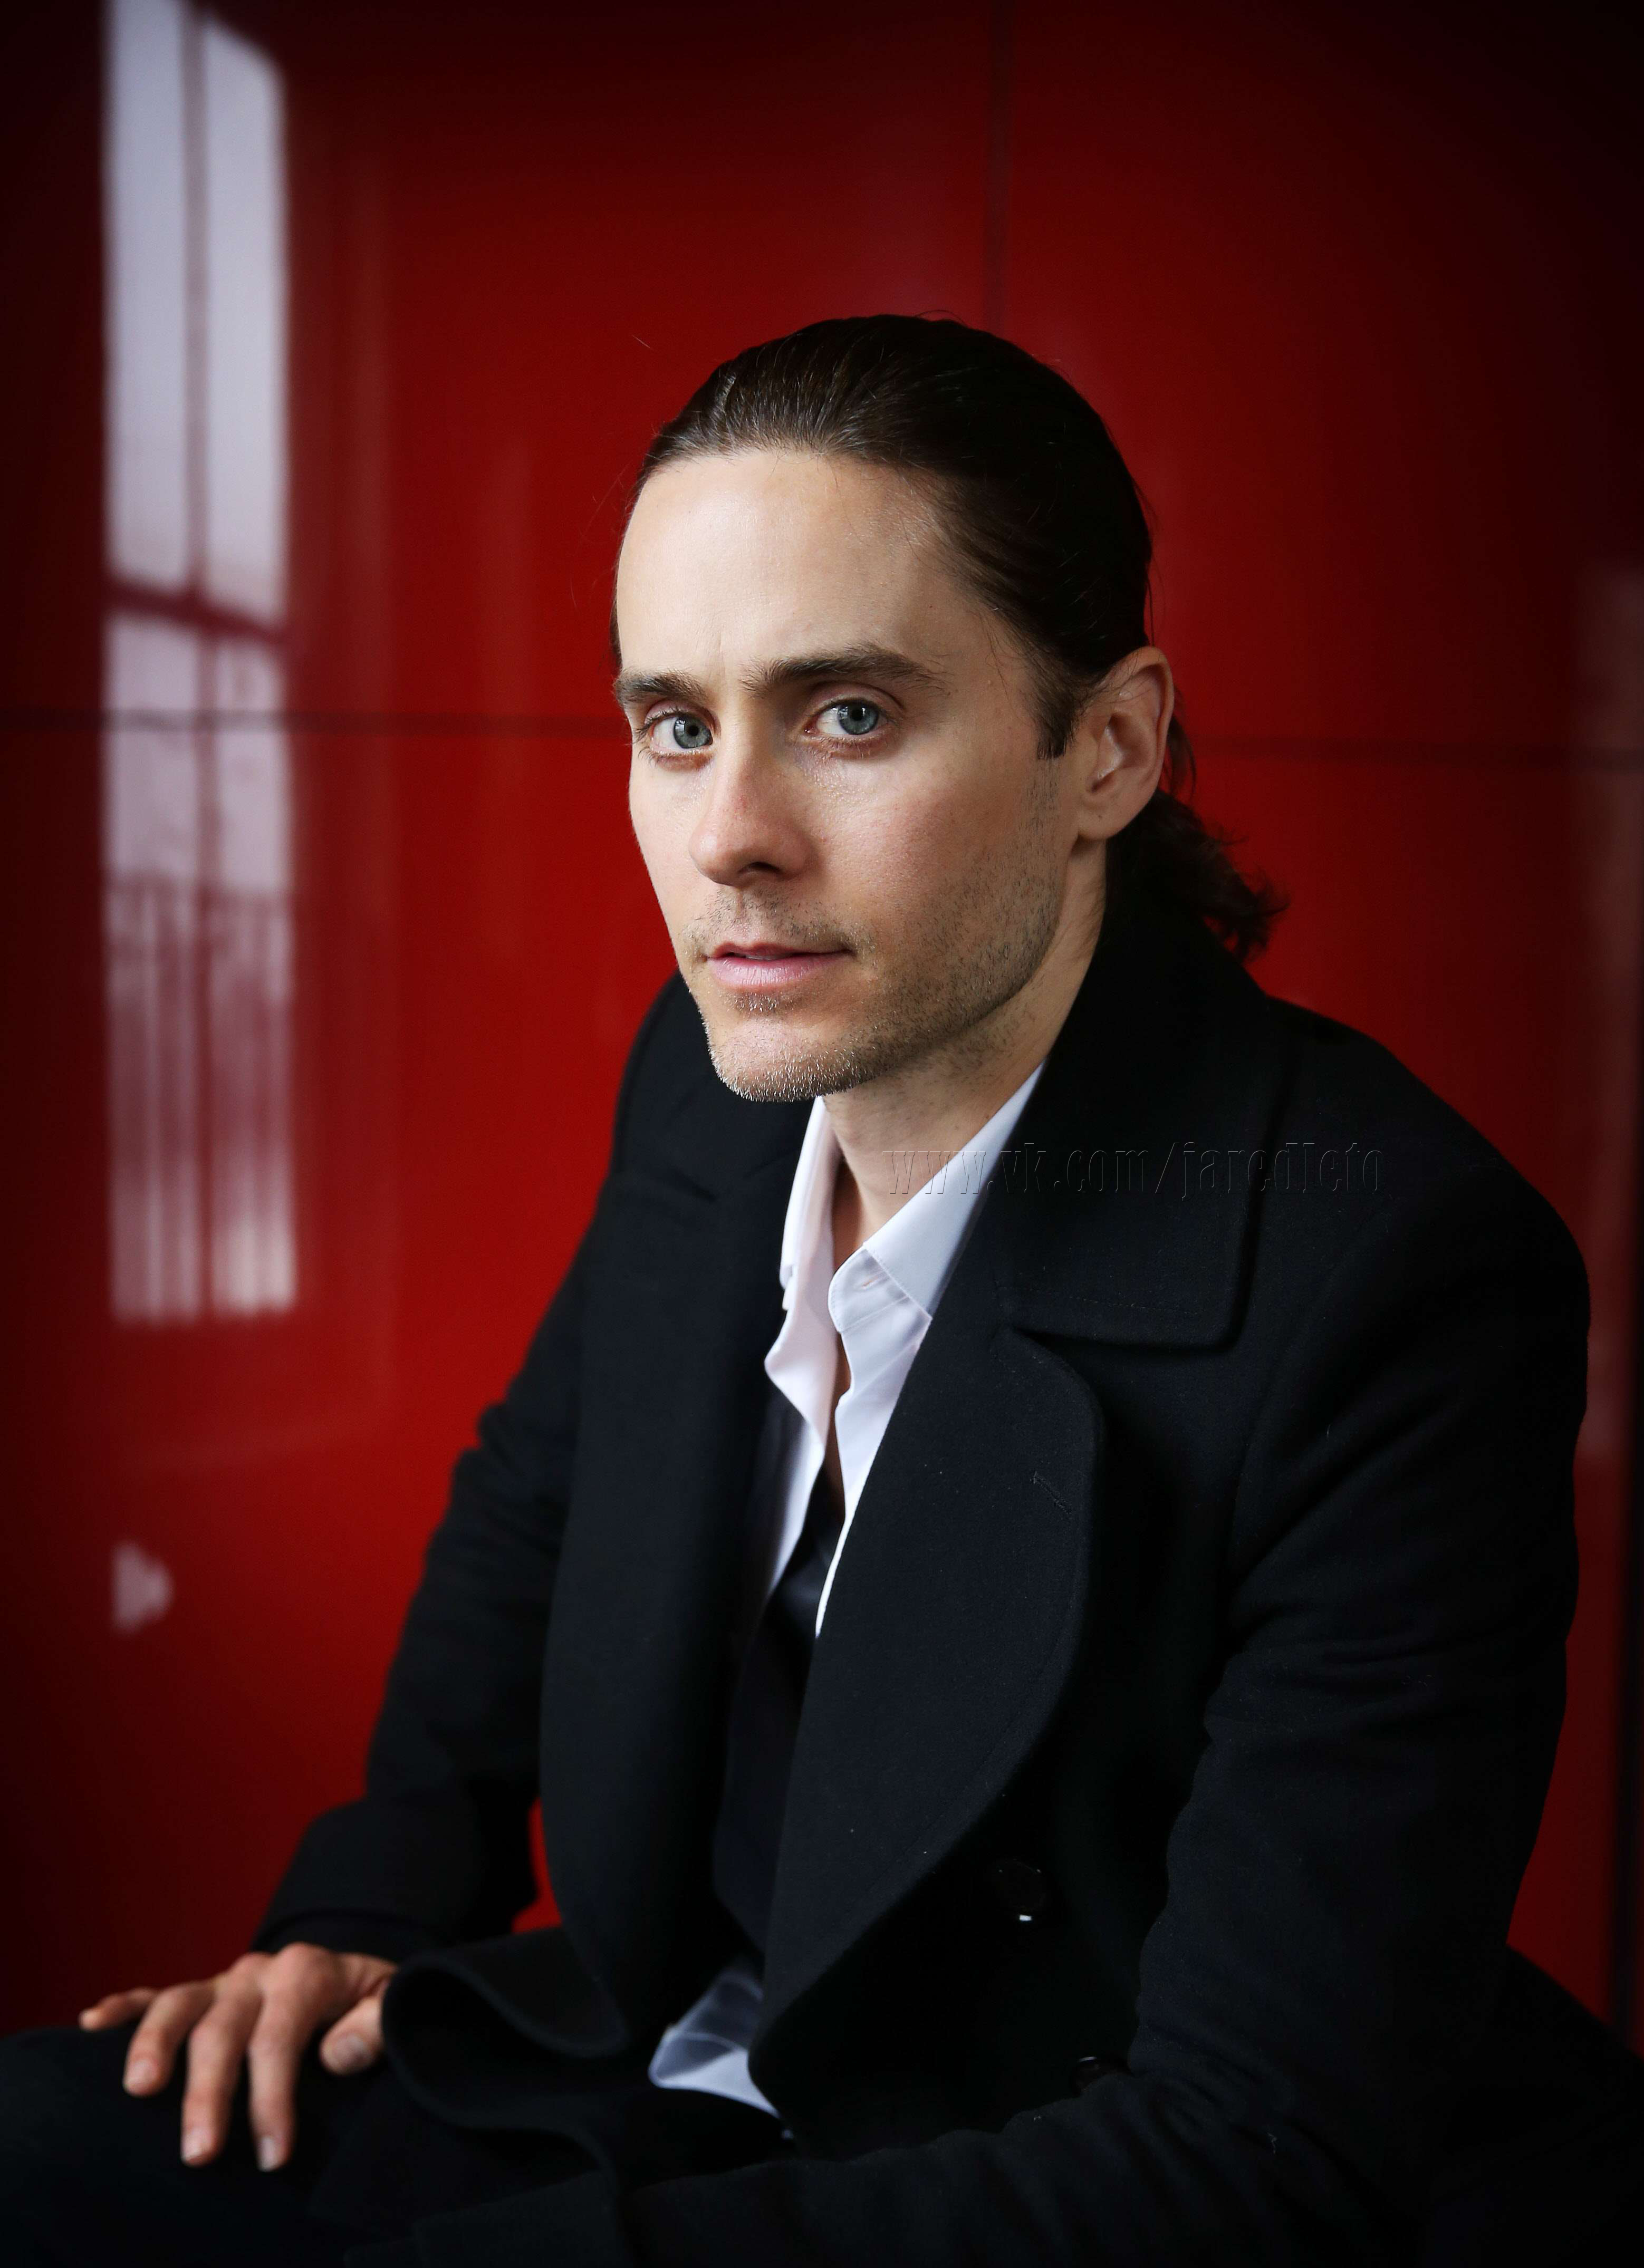 Jared Leto photo #958435